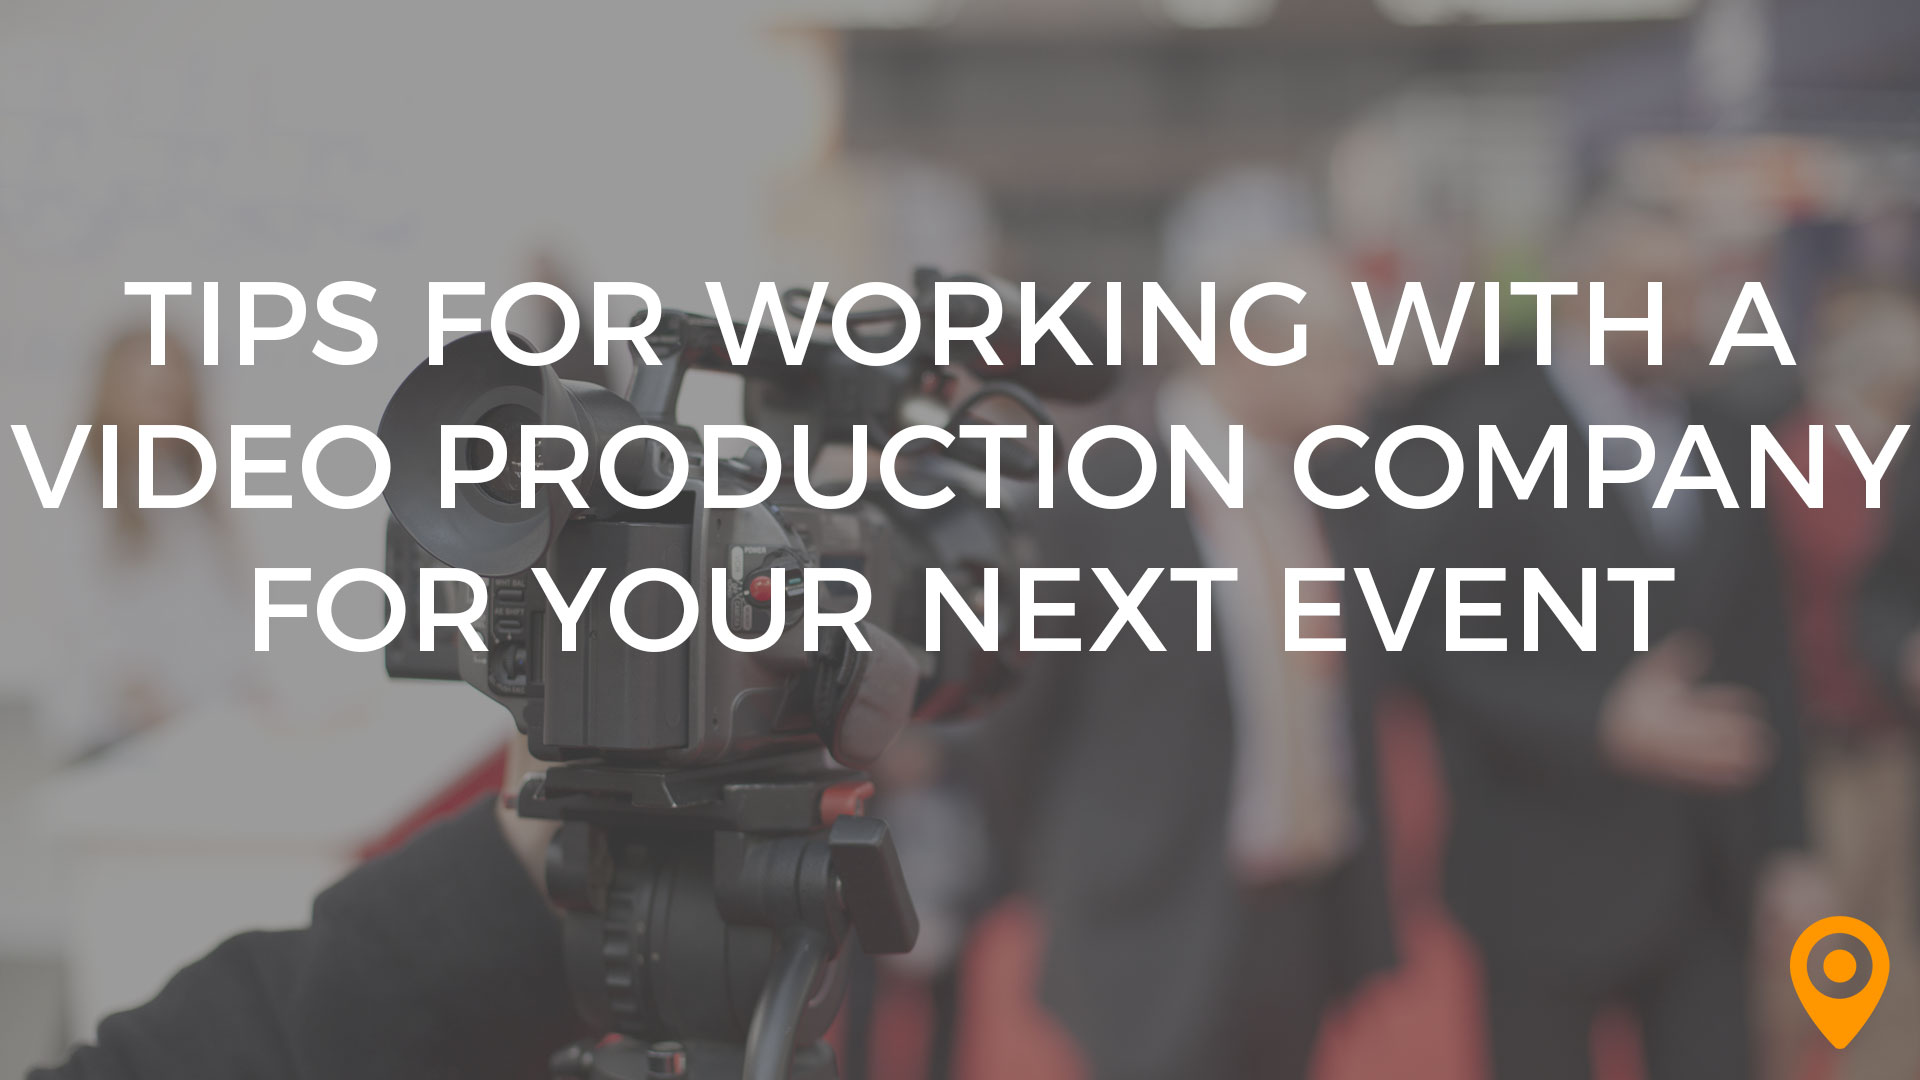 Tips for Working with a Video Production Company for Your Next Event